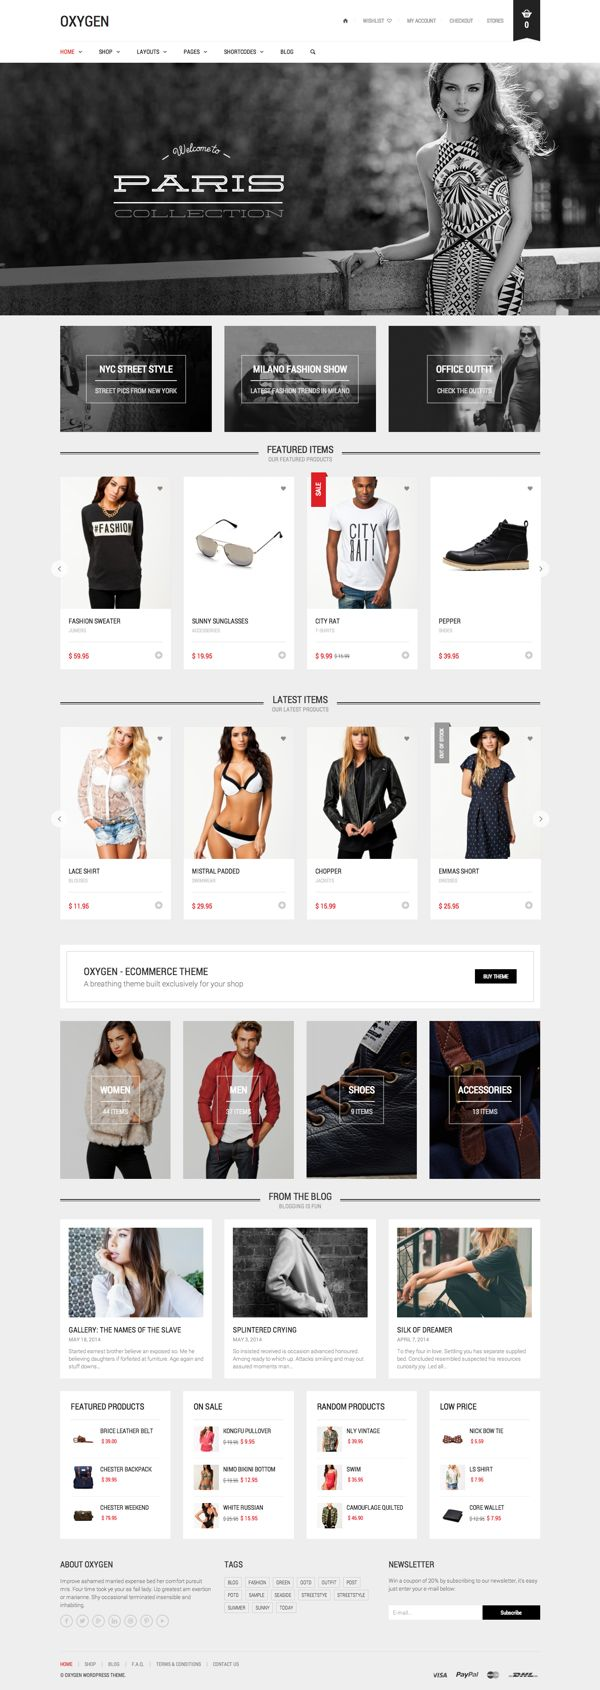 Oxygen - eCommerce Theme by Art Ramadani, via Behance